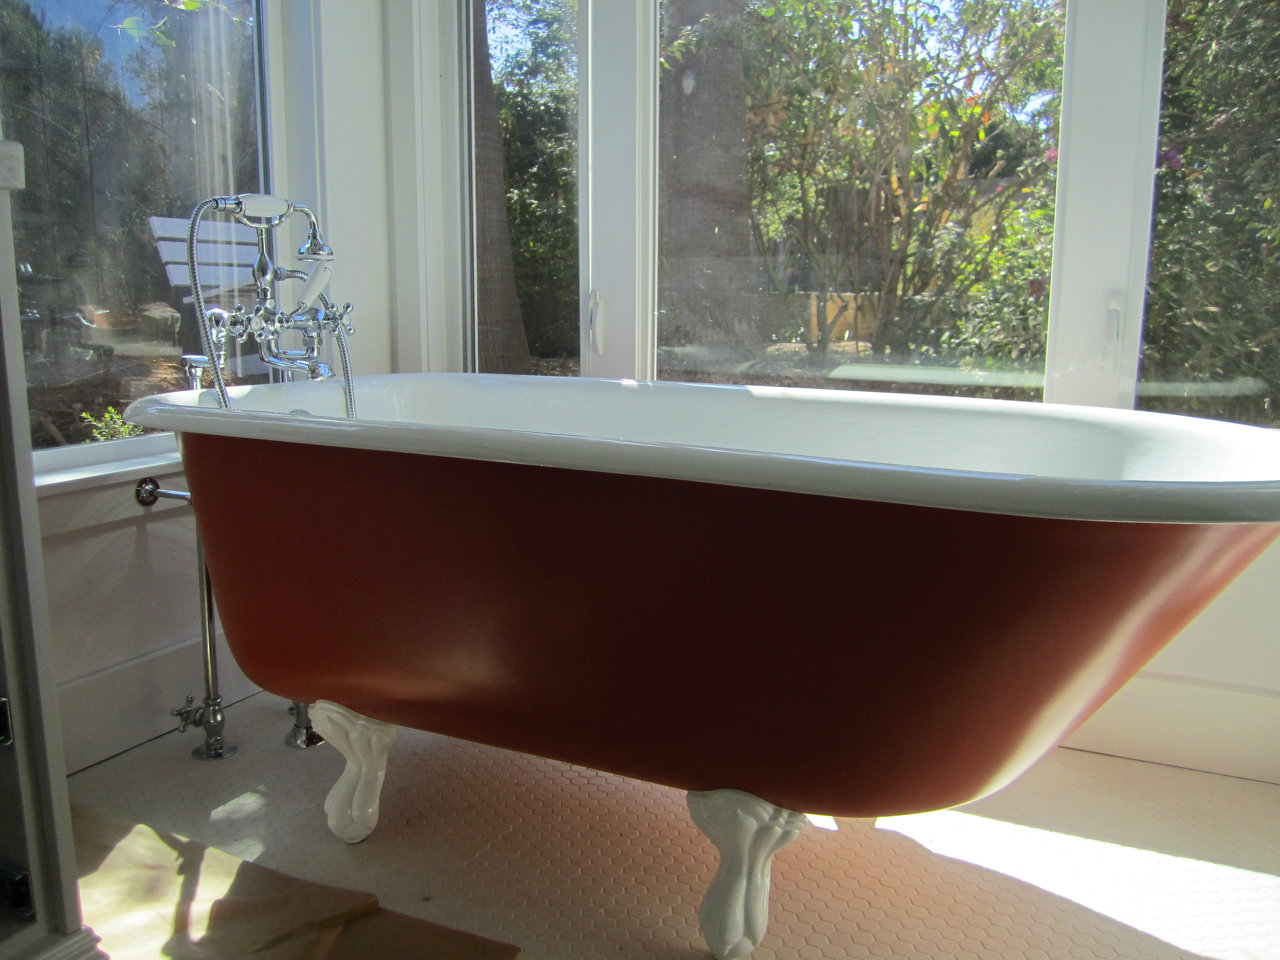 Freestanding Claw bath